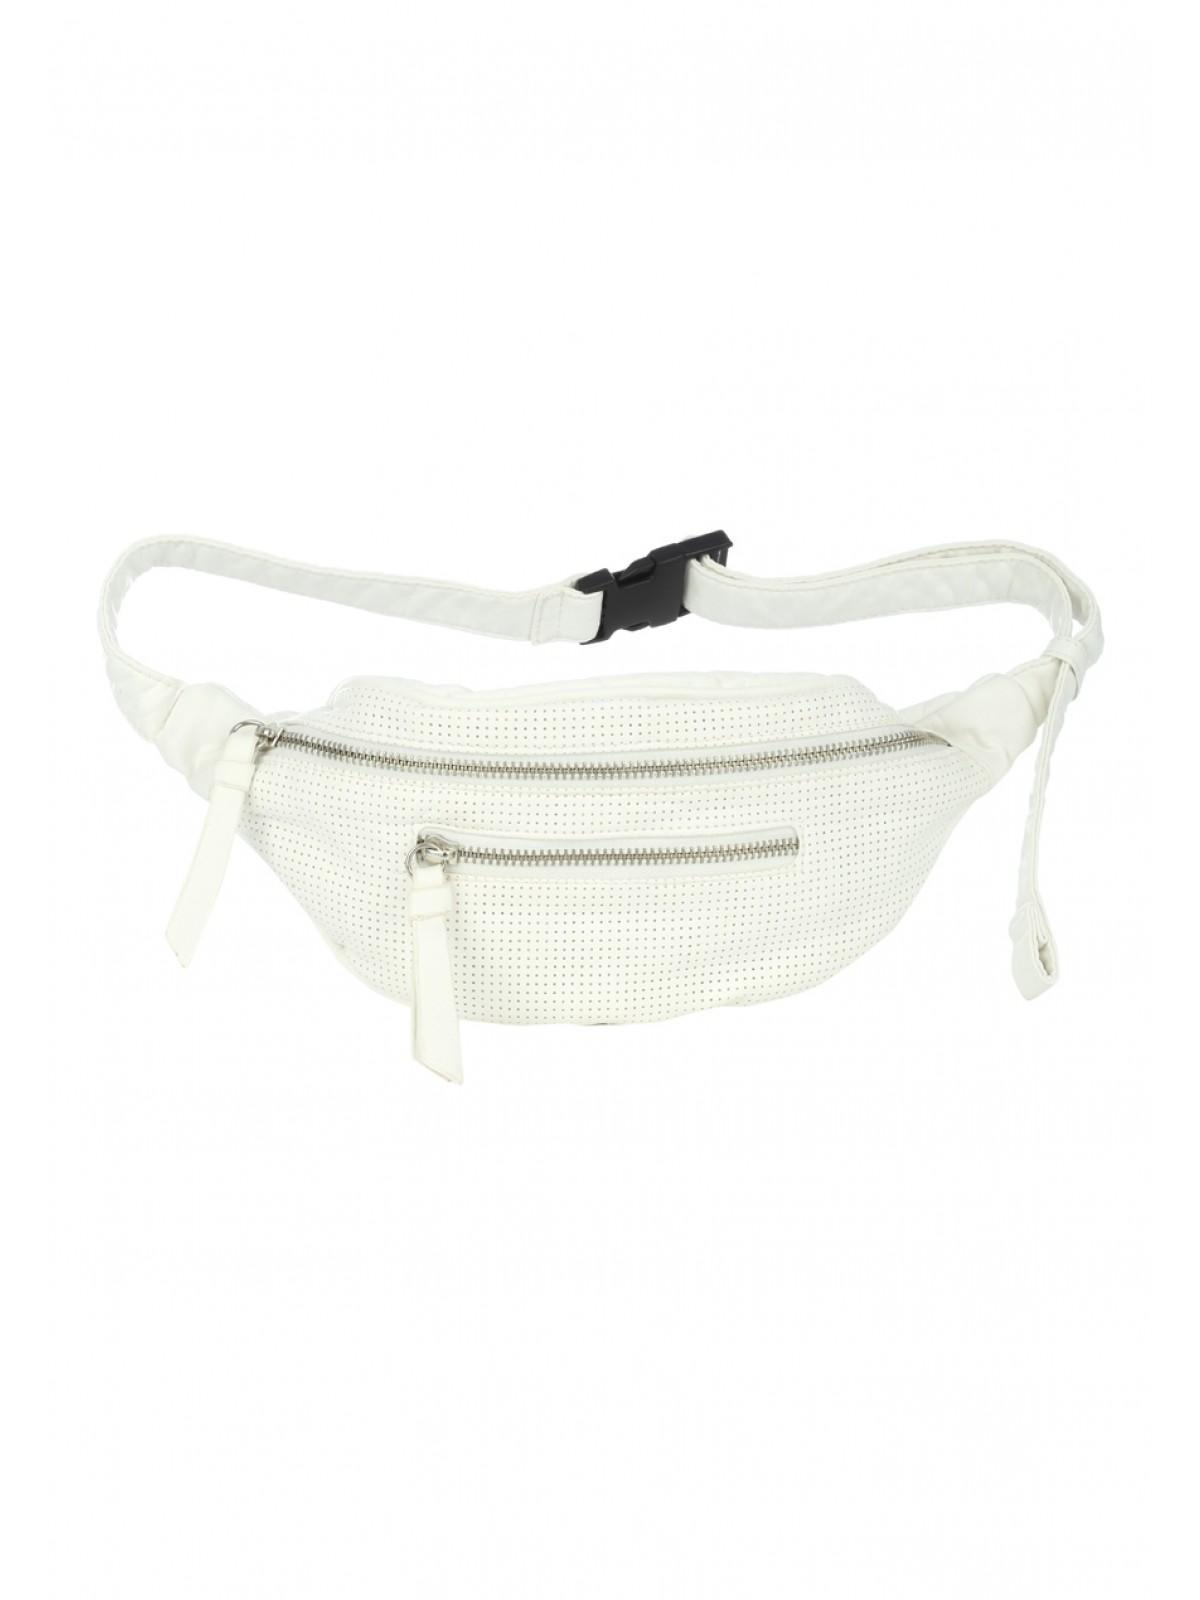 white bum bag